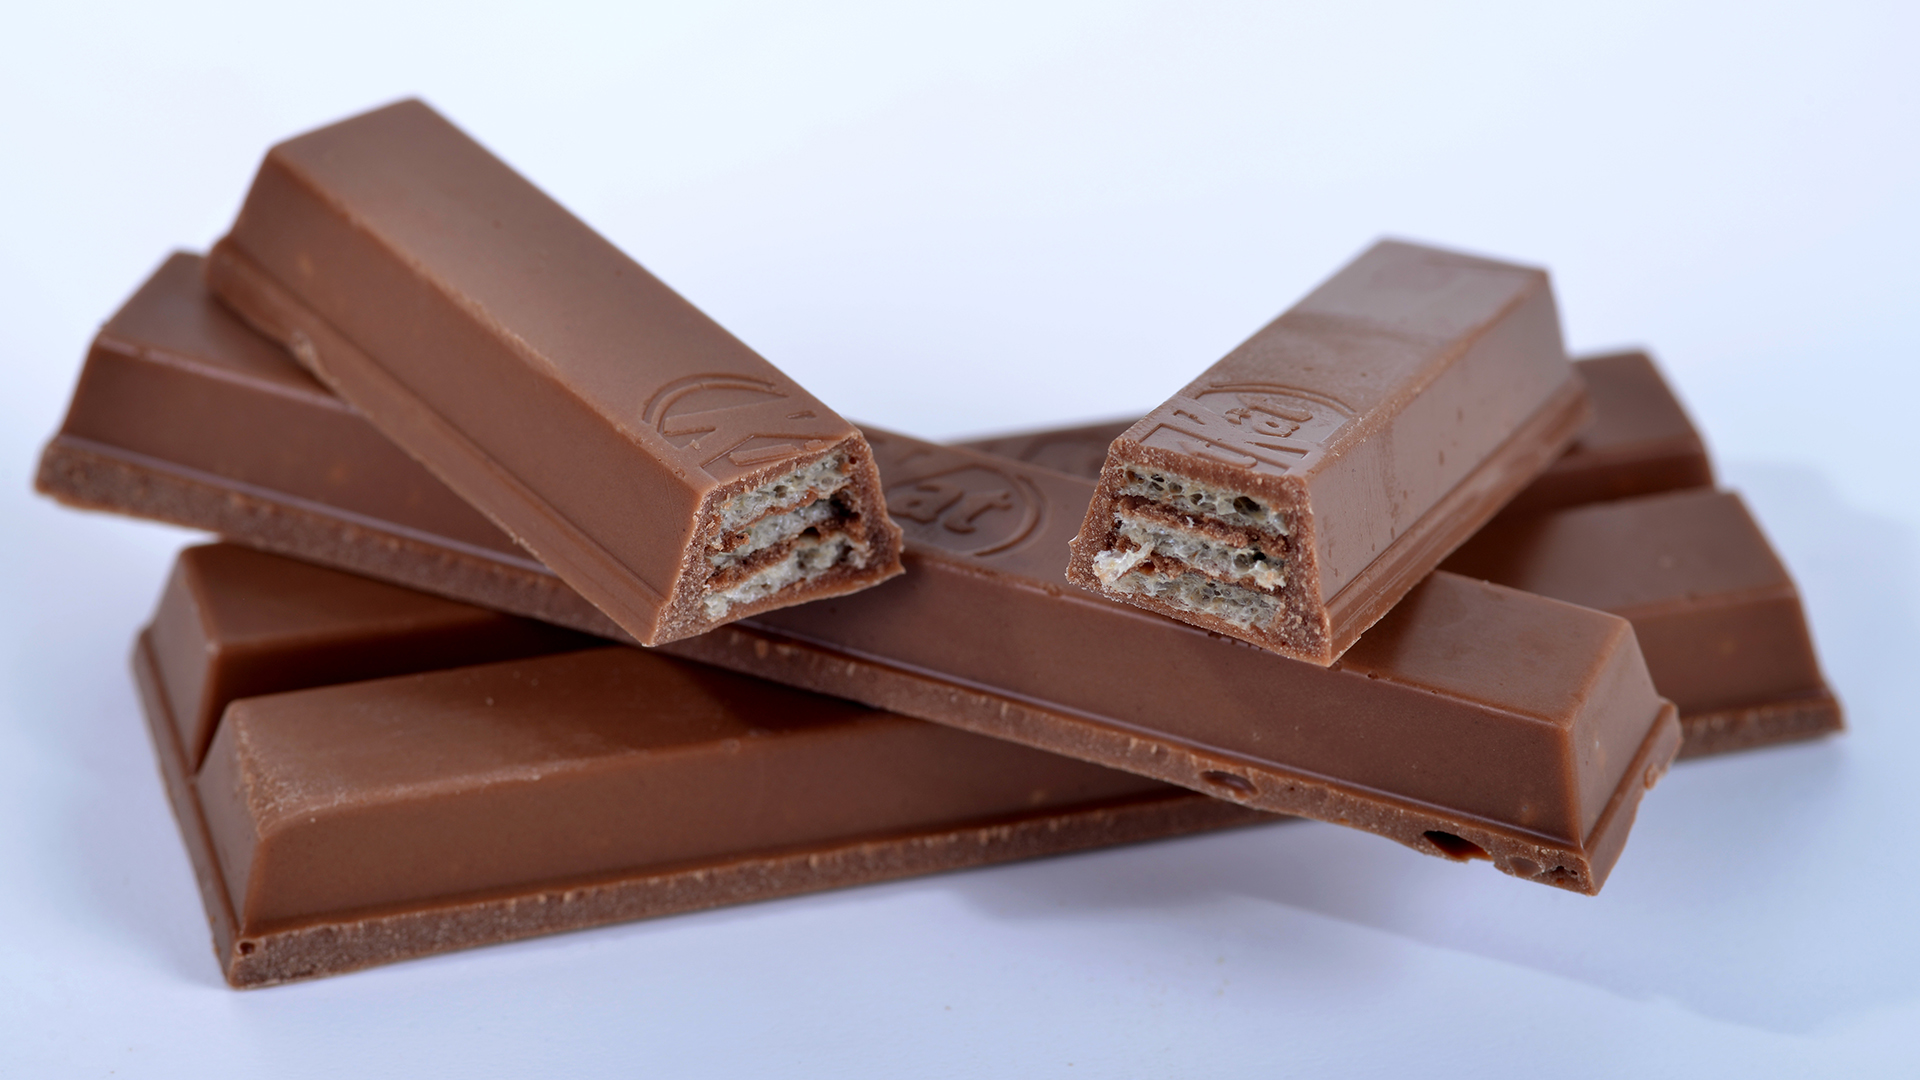 Nestle just created a new type of chocolate with no added sugar